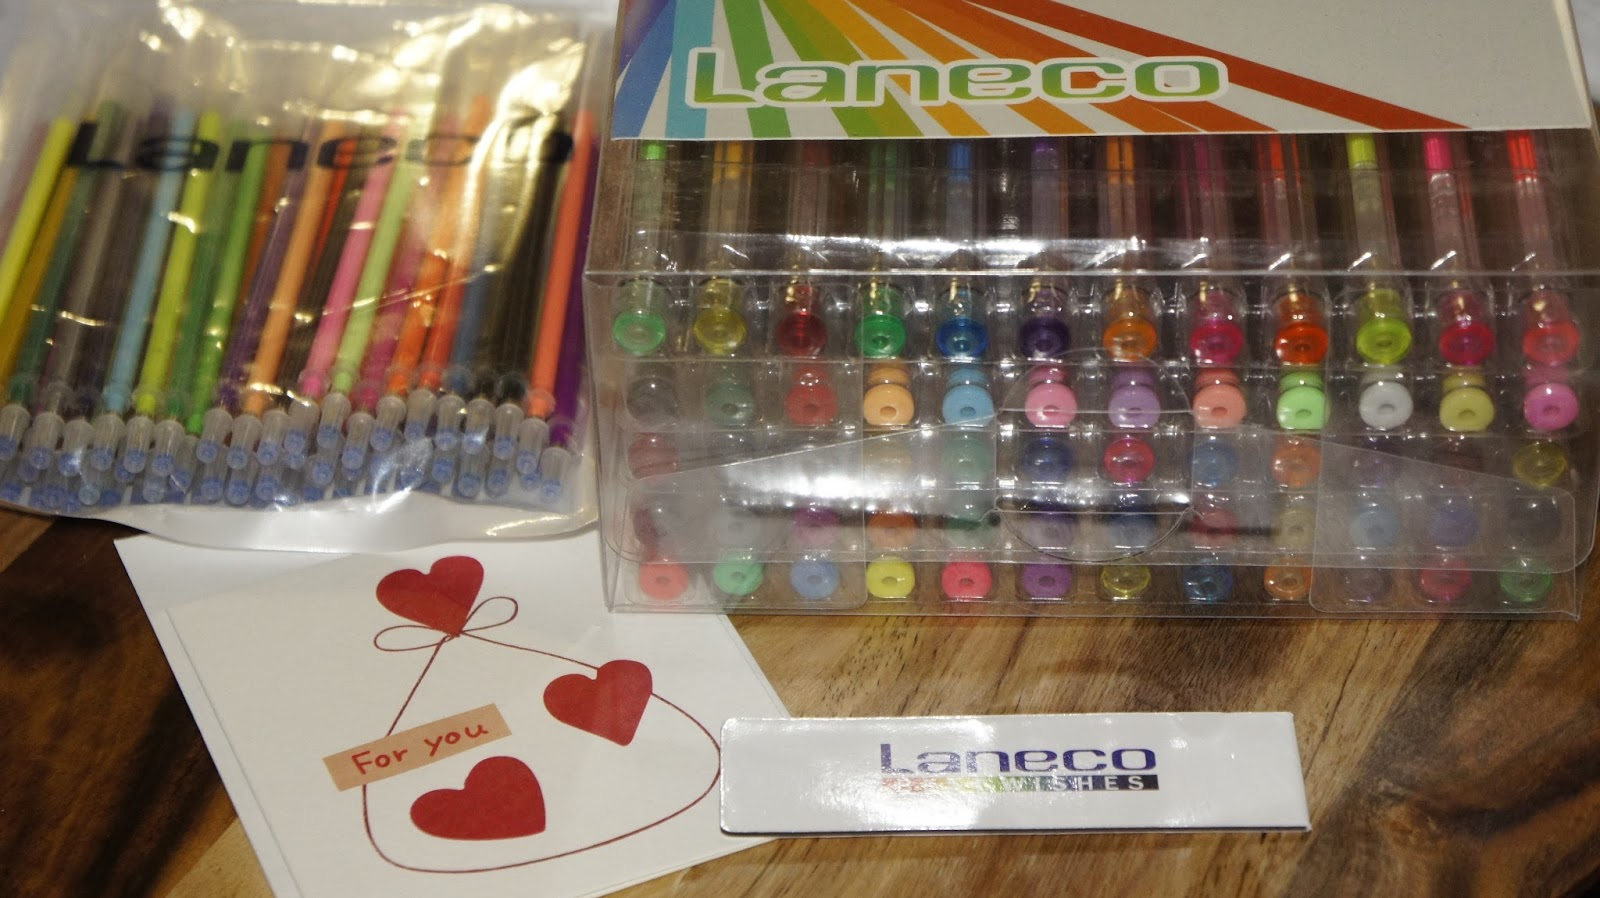 Laneco 120 Coloring Gel Pens Set with 60 Colored Gel Pens and 60 Ink Refills